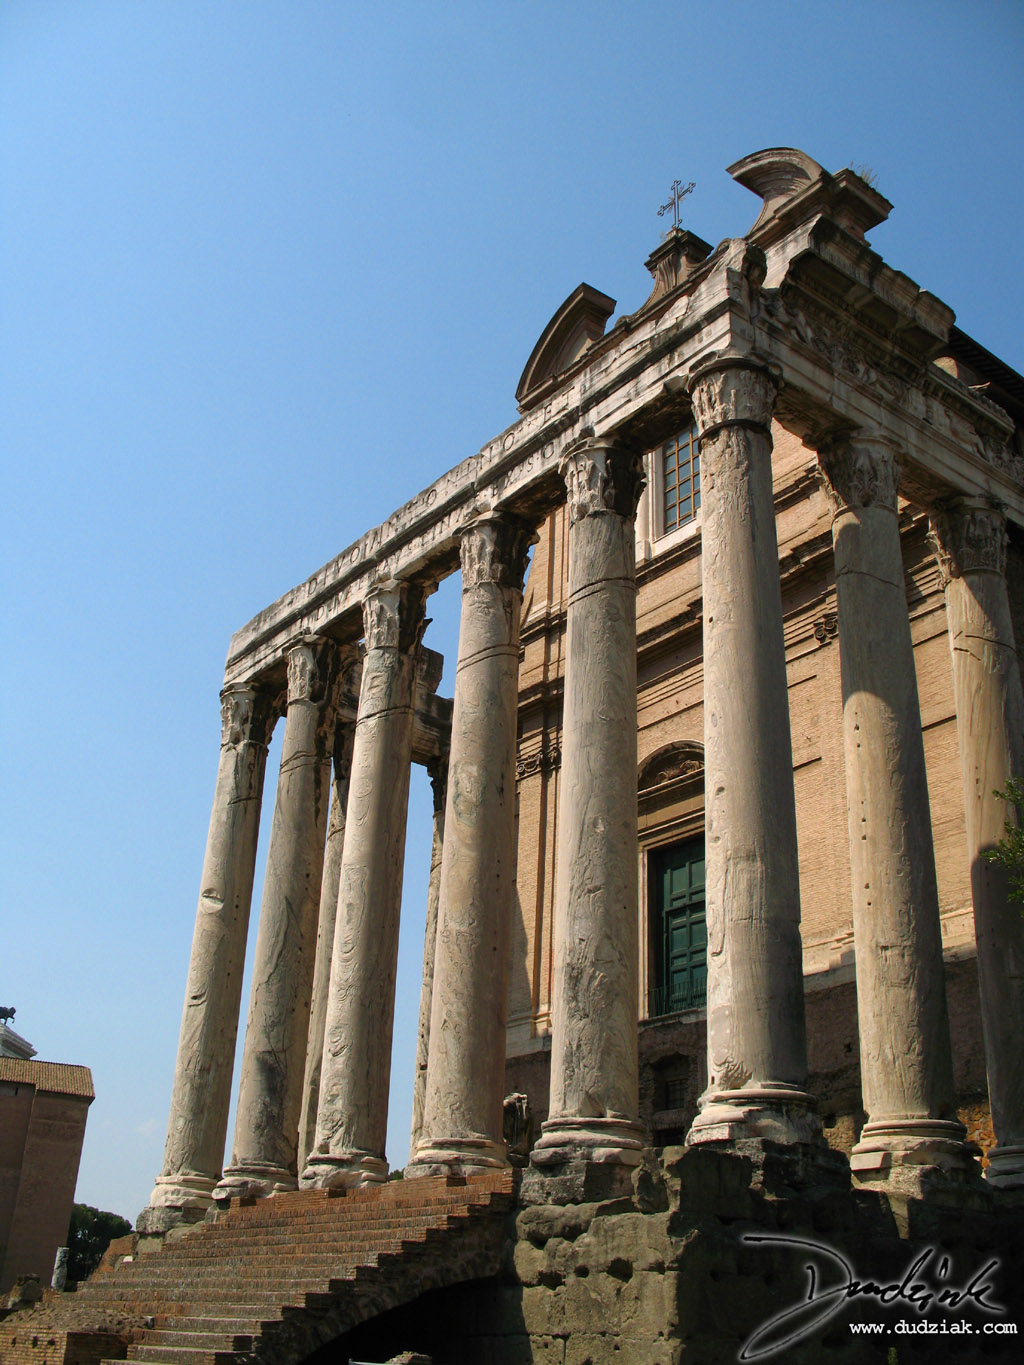 Side-Angle picture of the Temple of Antoninus and Faustina in the Roman Forum in Rome, Italy.